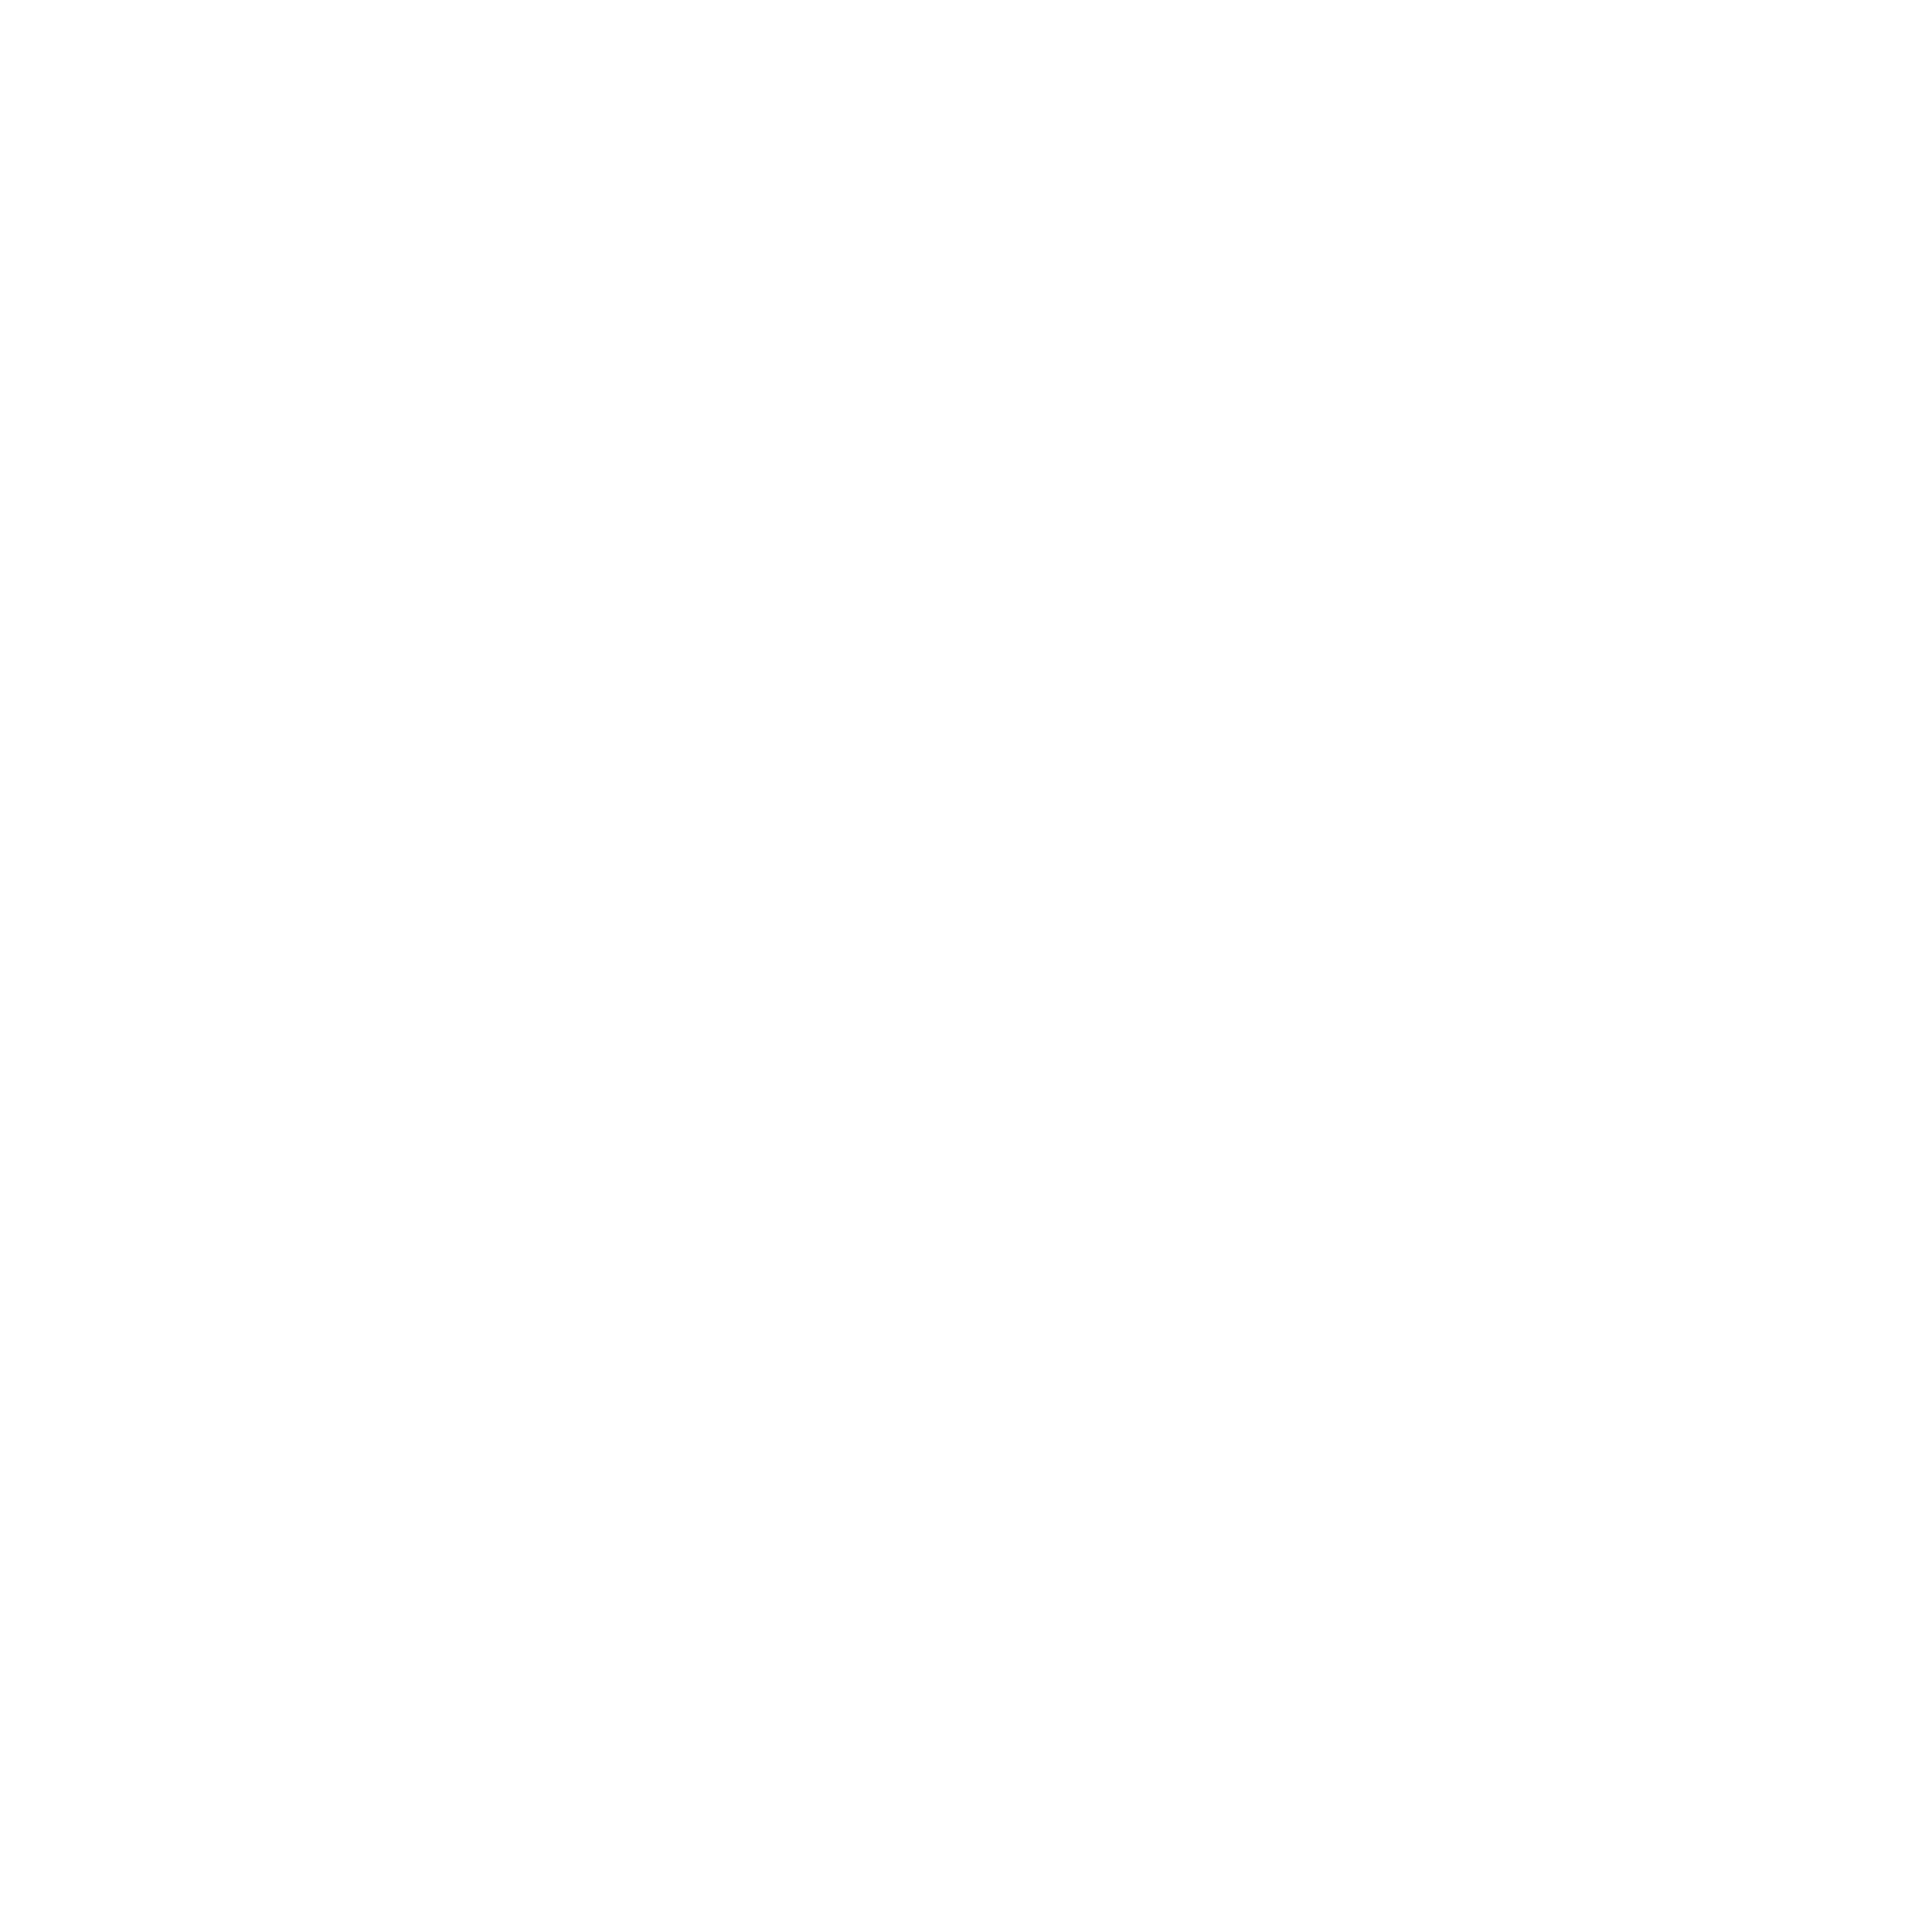 Devour-CulinaryClassic-2020-Logo-White.png